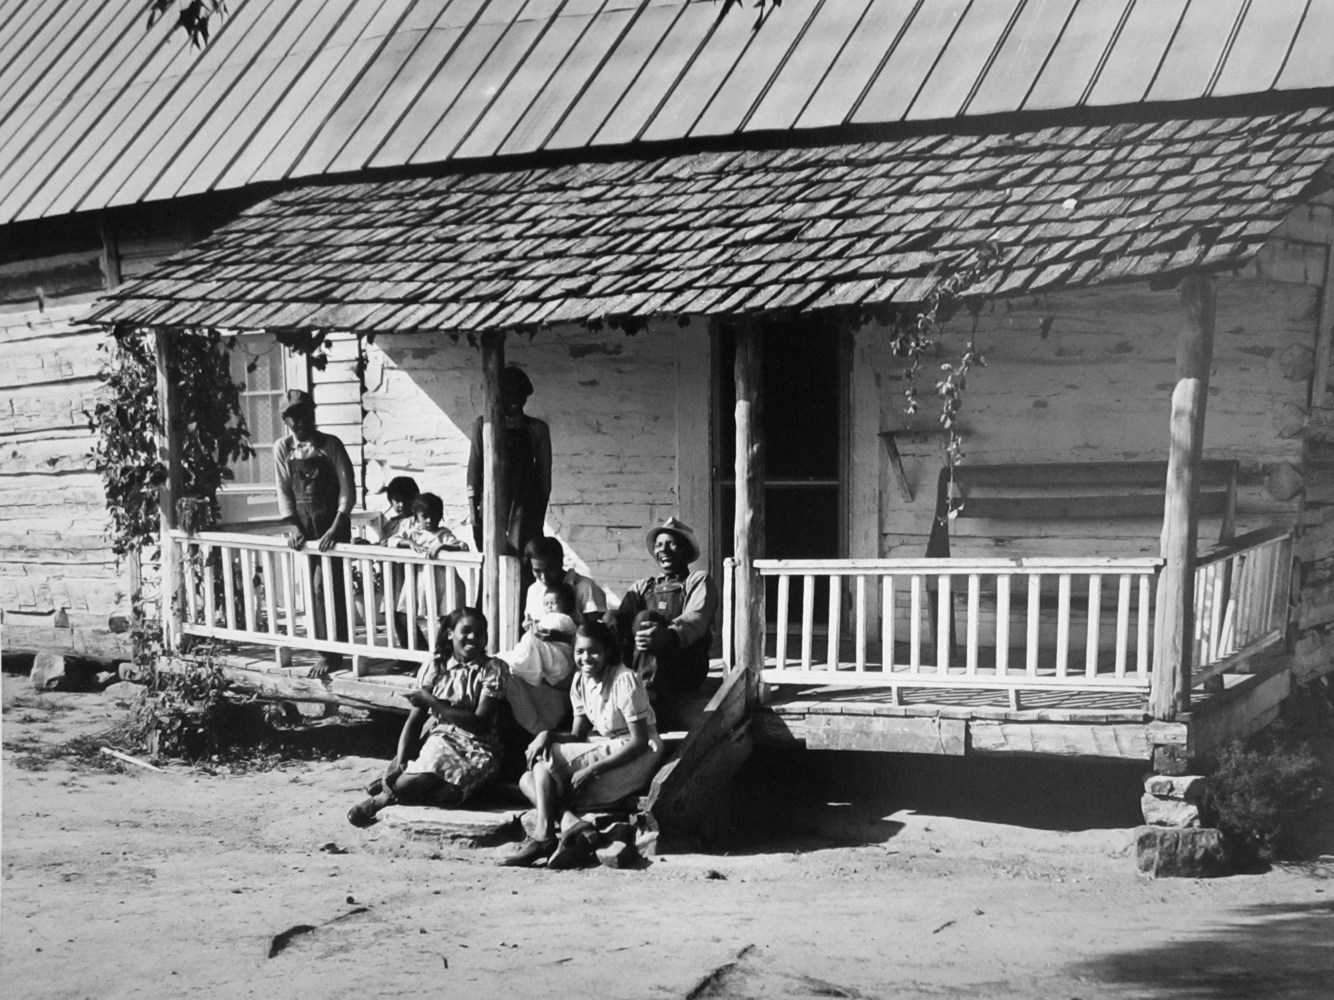 Marion Post Wolcott, A Negro tenant family on porch of their home. They are Farm Security Administration borrowers. Casewell County, North Carolina, 1940, gelatin silver print, signed, 11 x 14 inches